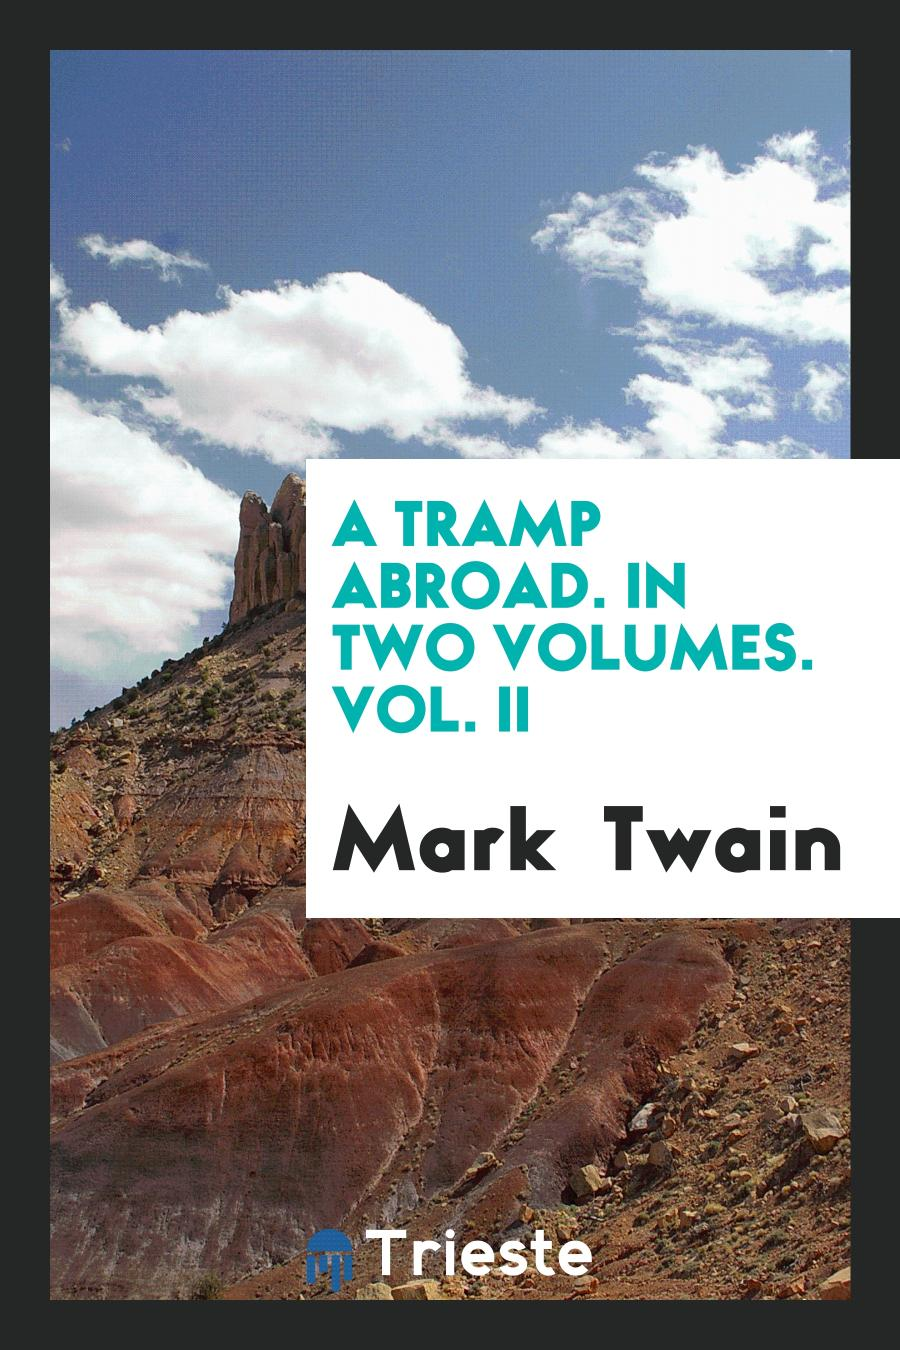 A Tramp Abroad. In Two Volumes. Vol. II